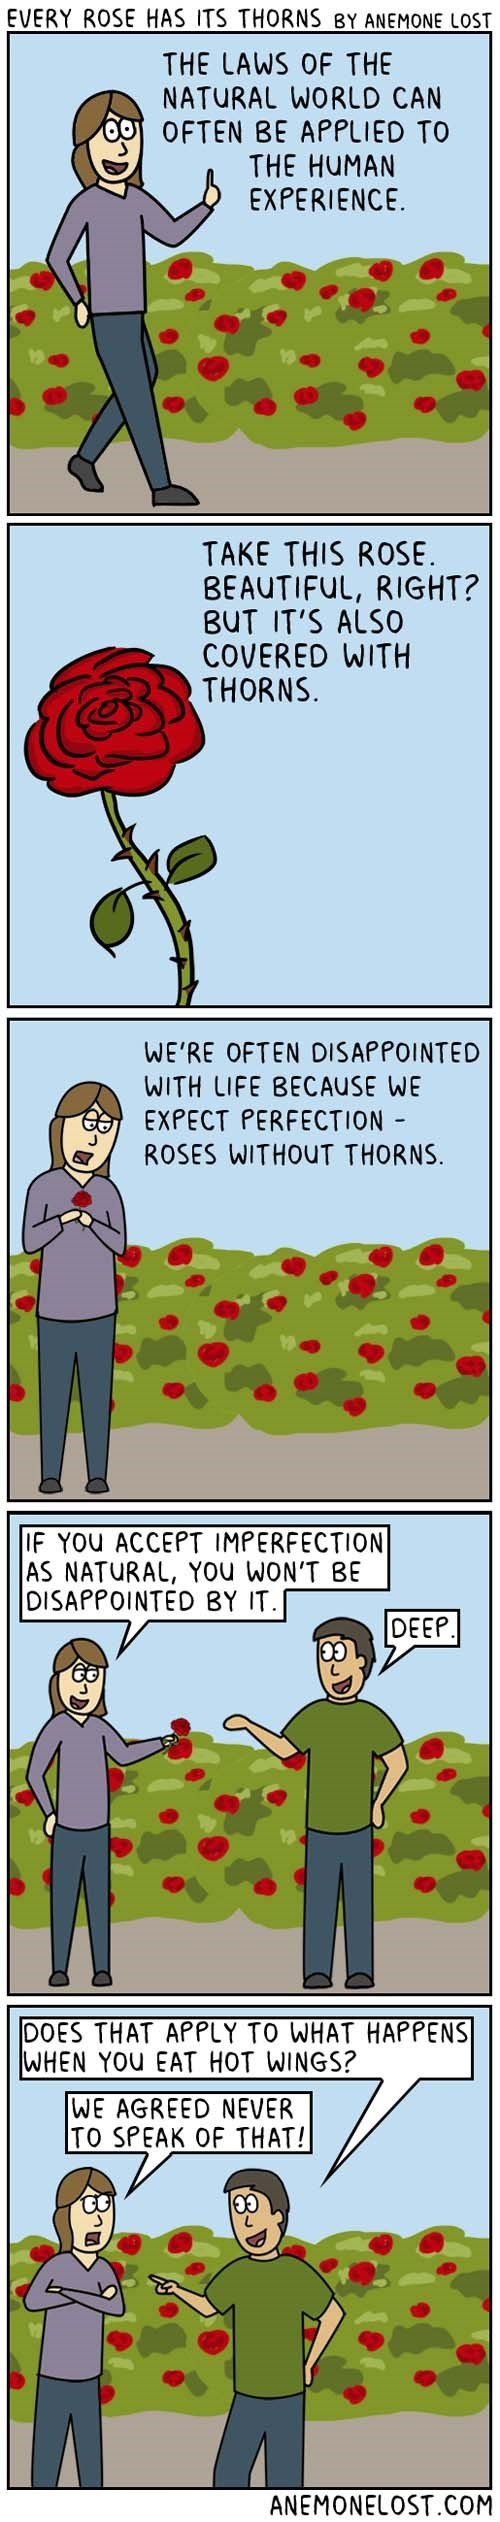 web-comics-roses-gardening-has-its-thorns